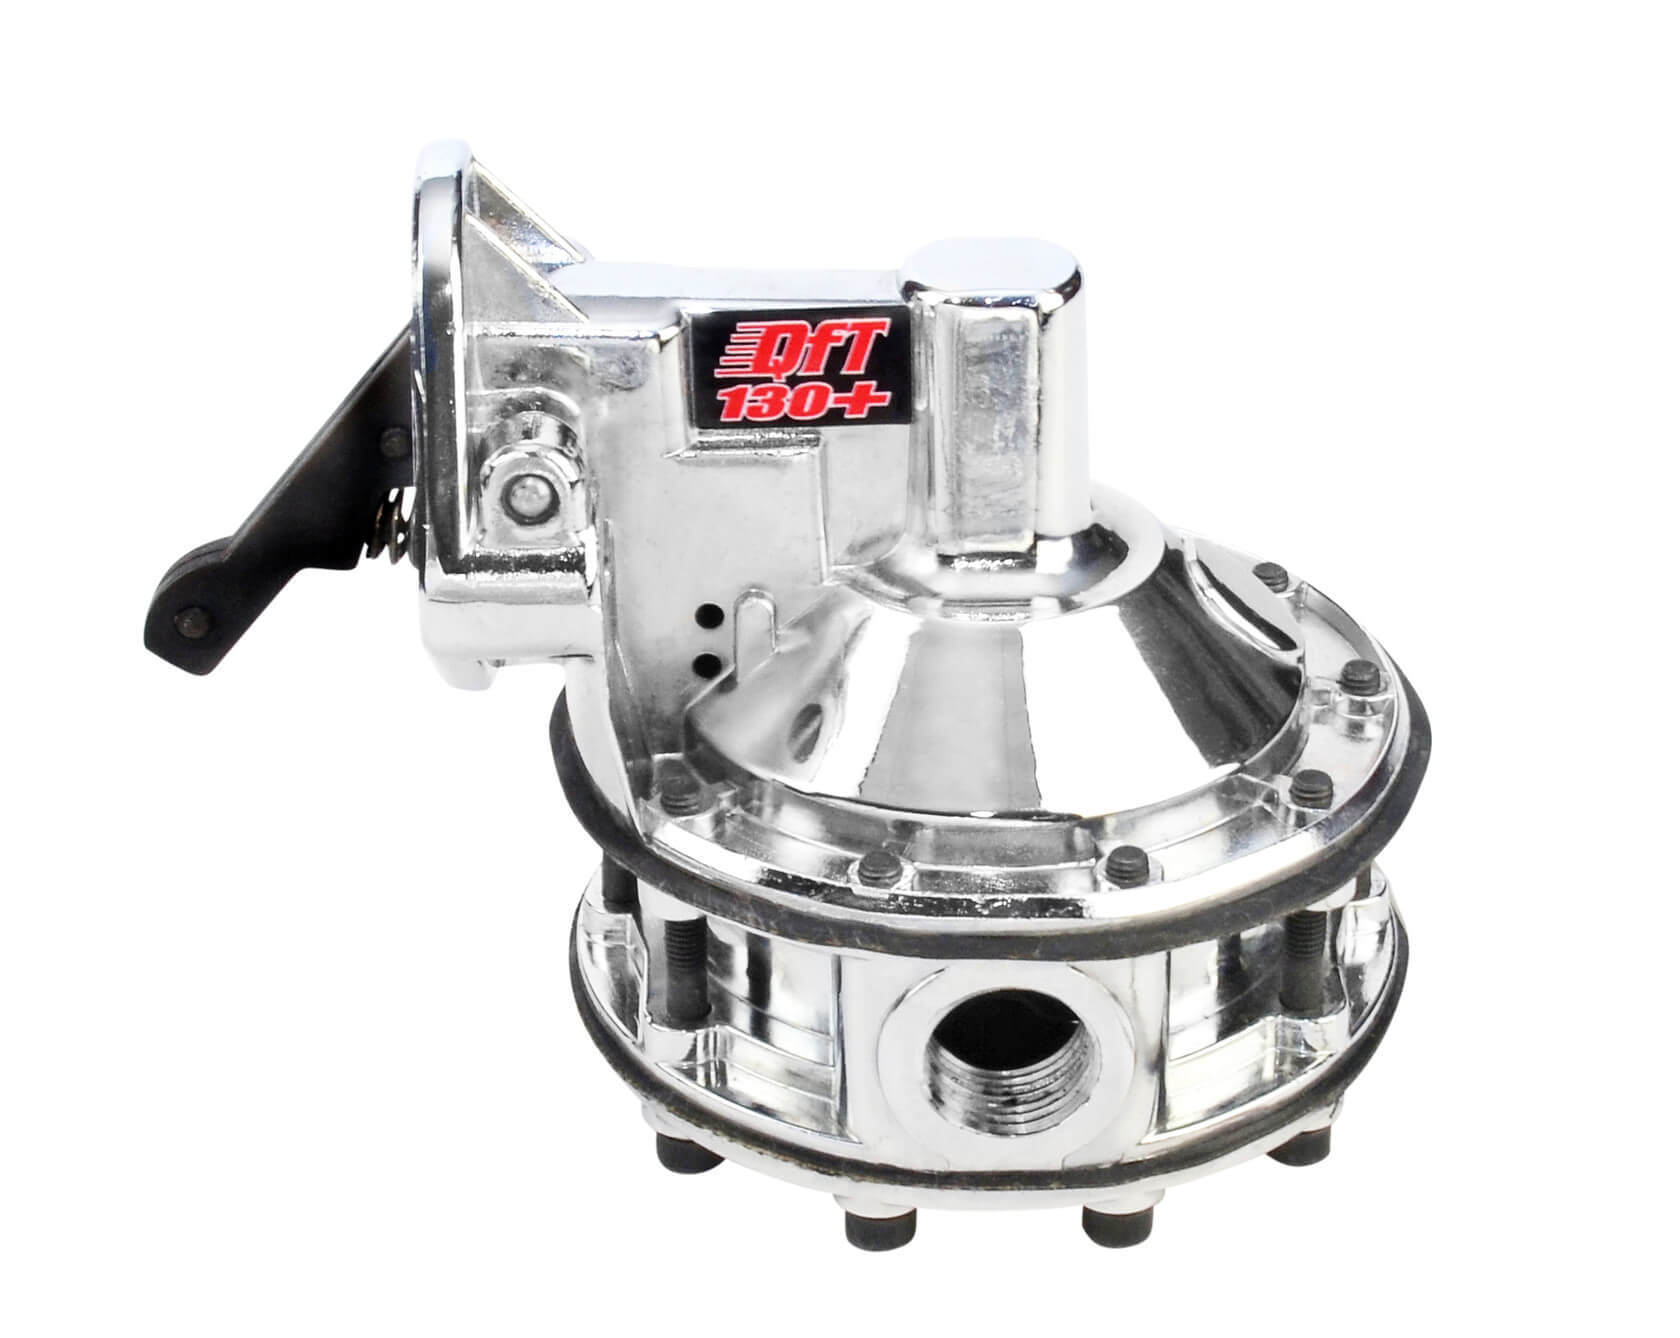 Quick Fuel Technology 30-350-1R Fuel Pump, Mechanical, 130 Plus gph, 12-16 psi, 1/2 in NPT Female Inlet, 1/2 n NPT Female Outlet, Aluminum, Polished, E85/Gas/Methanol, Small Block Chevy, Each